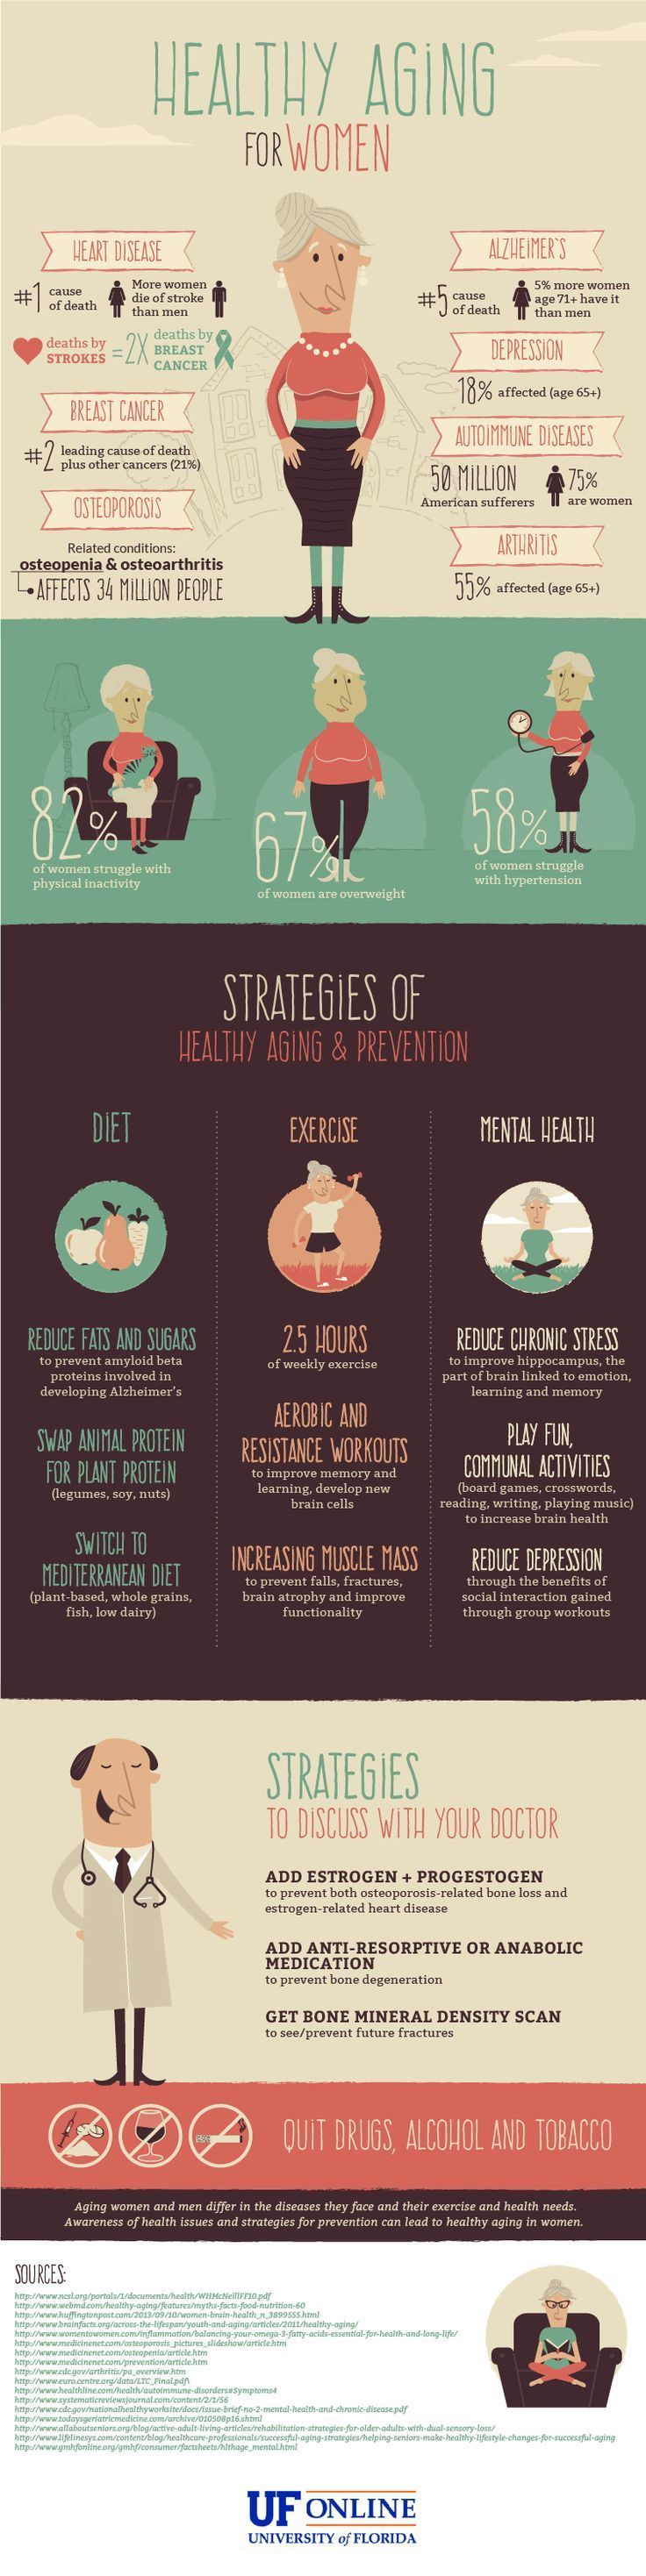 A Guide to Healthy Aging for Women  UF Online Infographic: Health Aging for Women